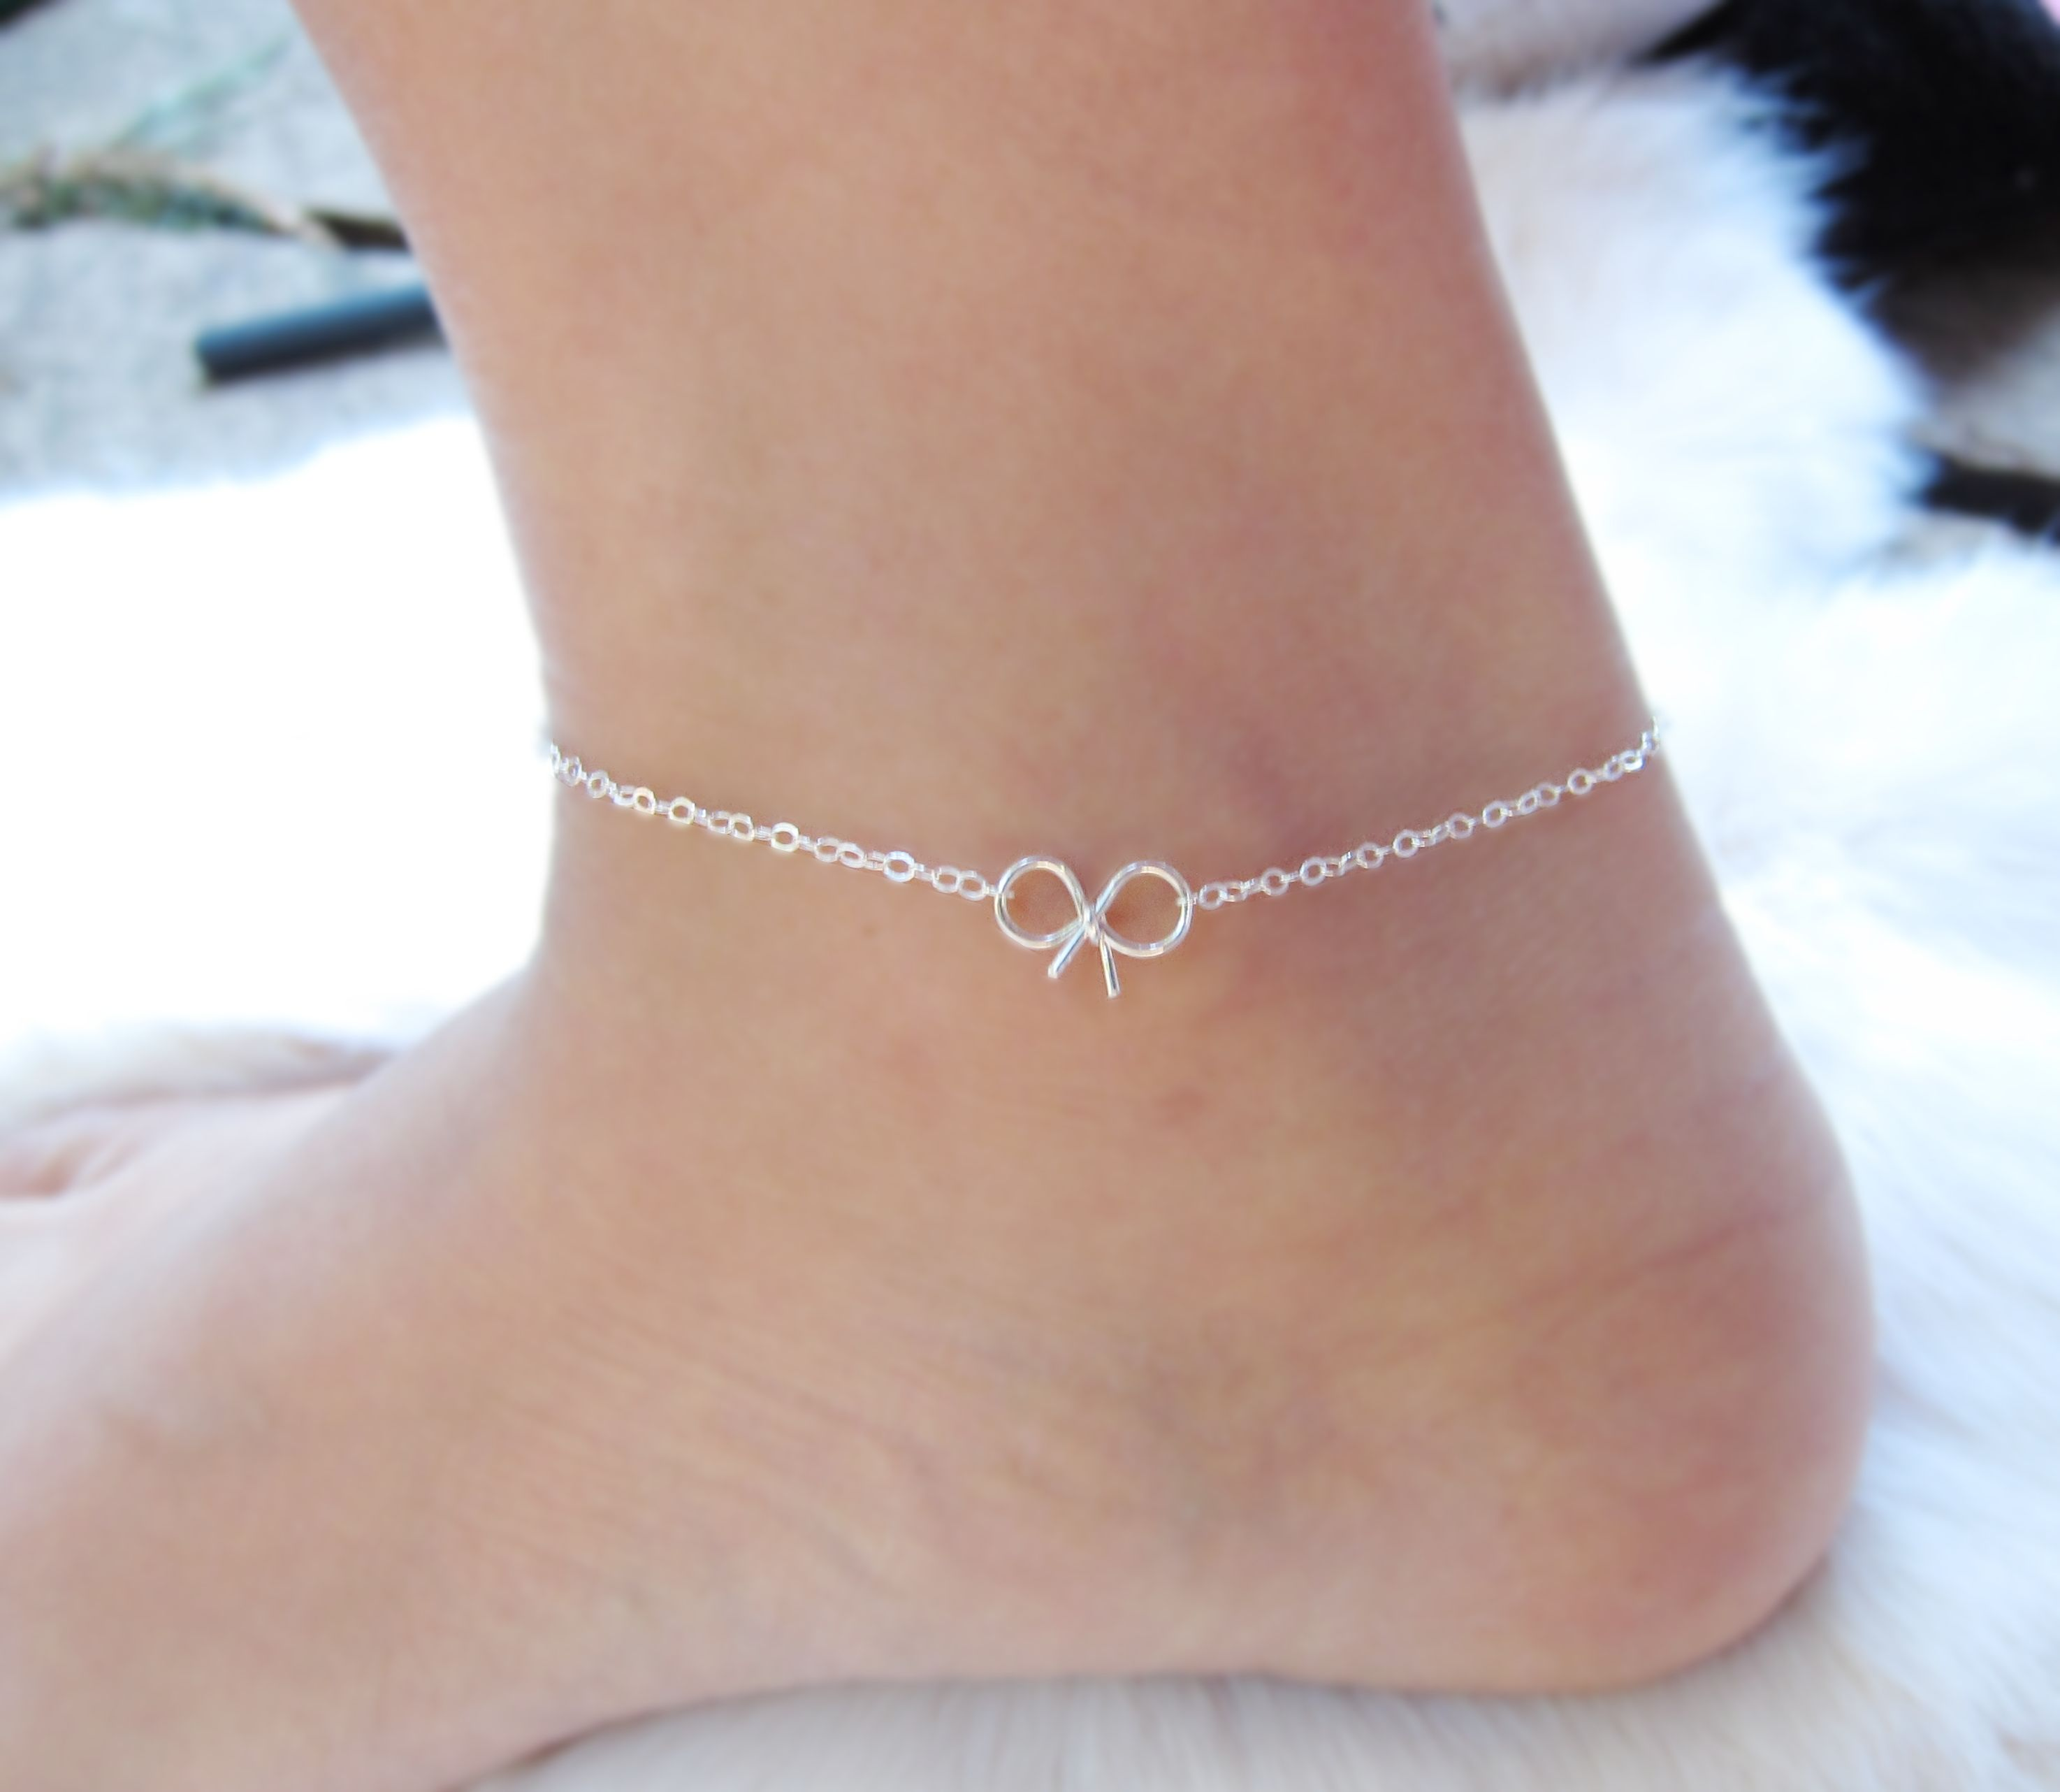 our for partners just in or anklet ankle makes choices id yellow perfect visit simple bright jewelry summer spotting the black beach us bracelets this at gorgeous swingers pin